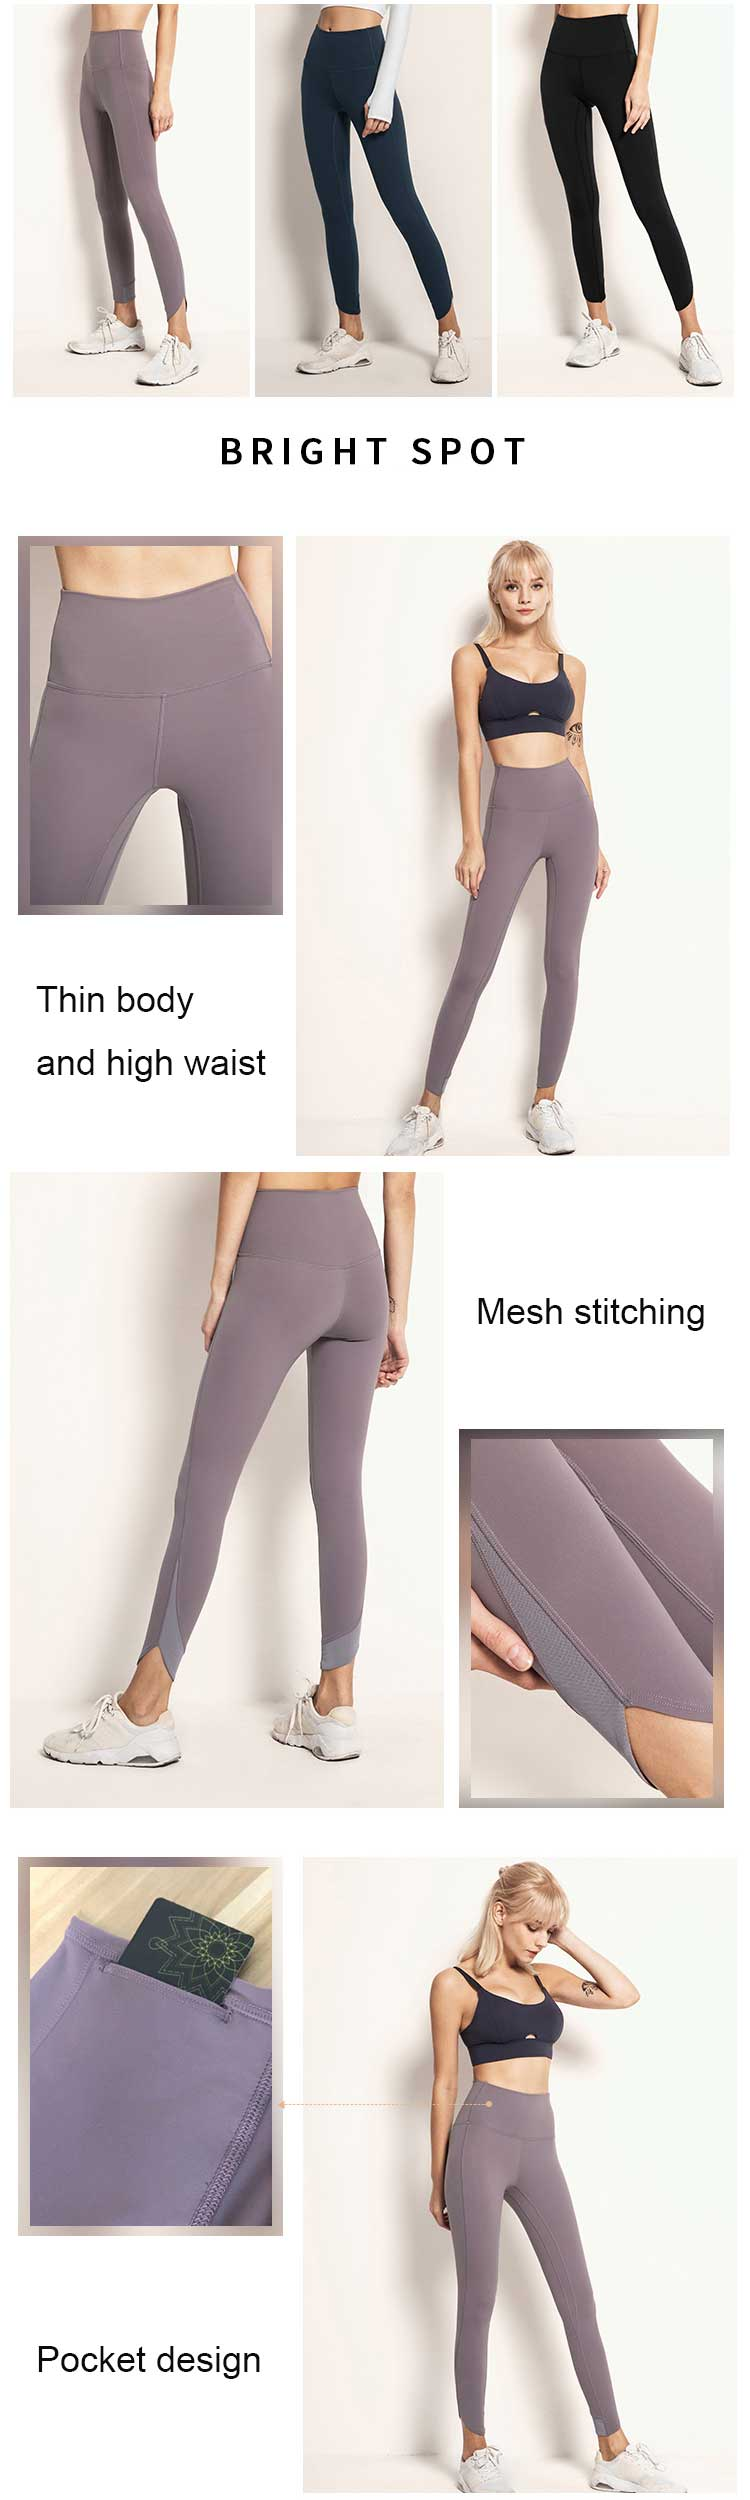 covering-the-over-flesh-between-the-waist